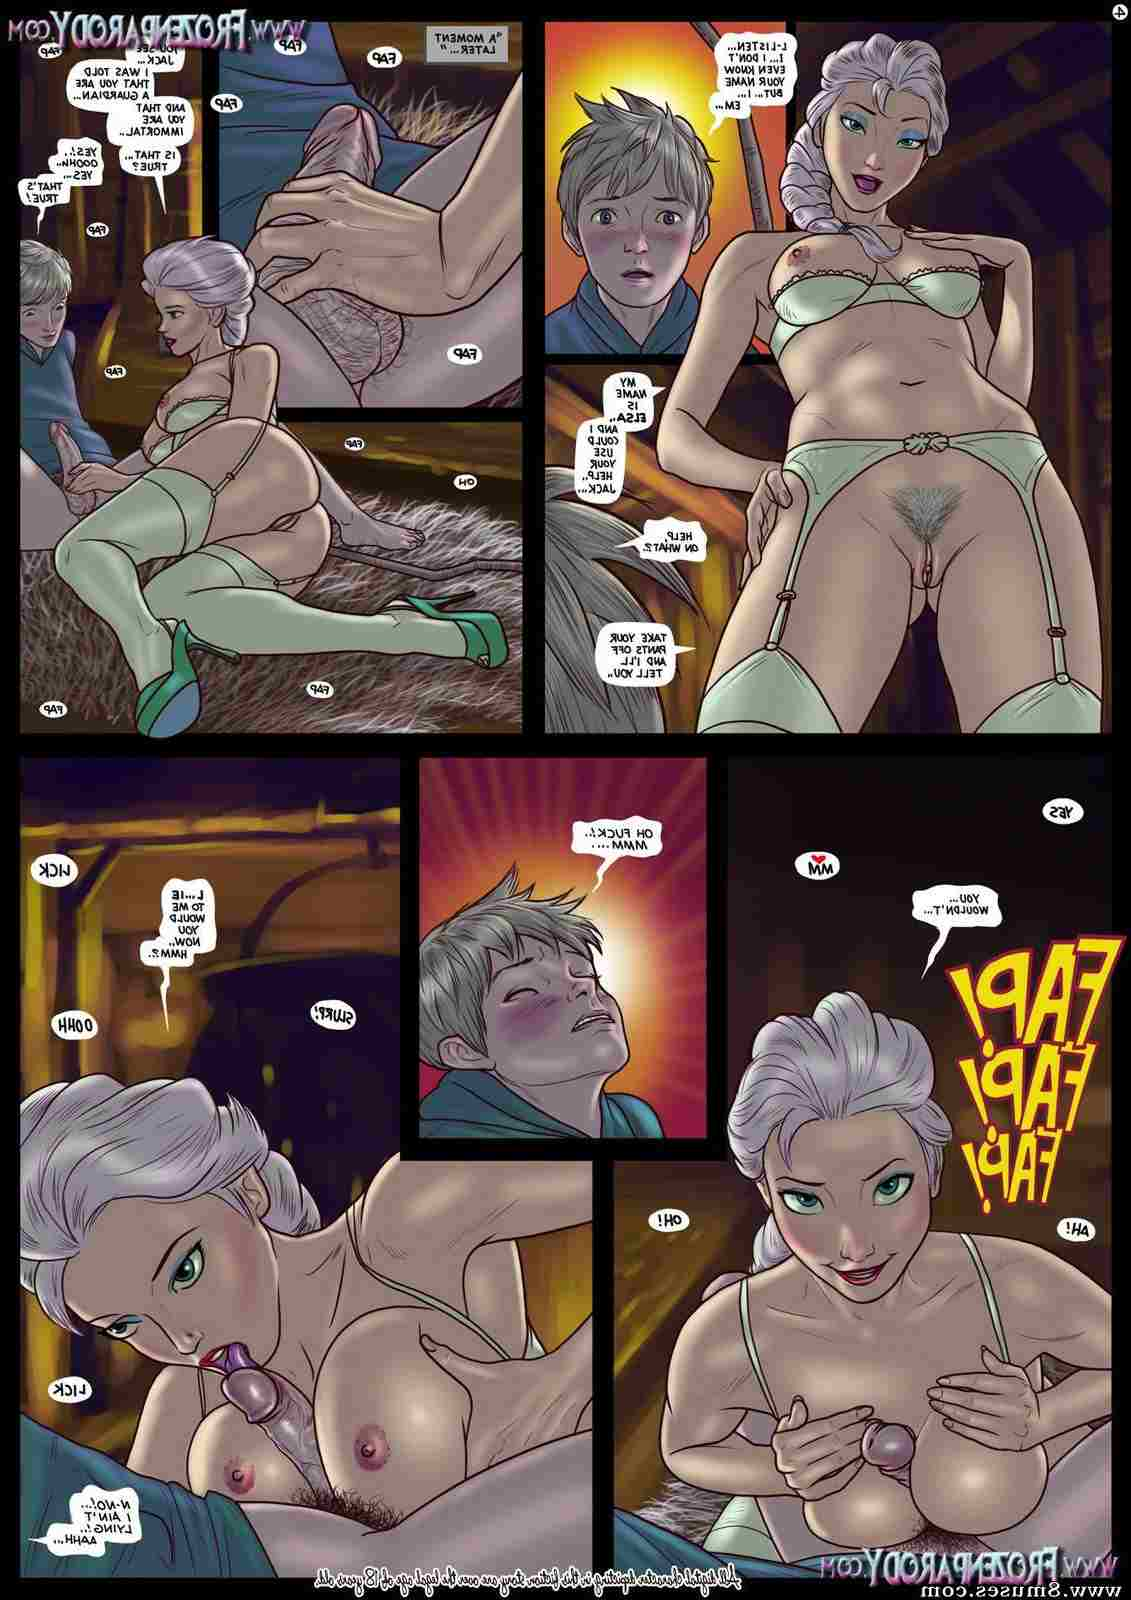 Frozen-Parody-Comics/Frozen-Parody-12-Elsa-Meet-Jack Frozen_Parody_12_-_Elsa_Meet_Jack__8muses_-_Sex_and_Porn_Comics_4.jpg